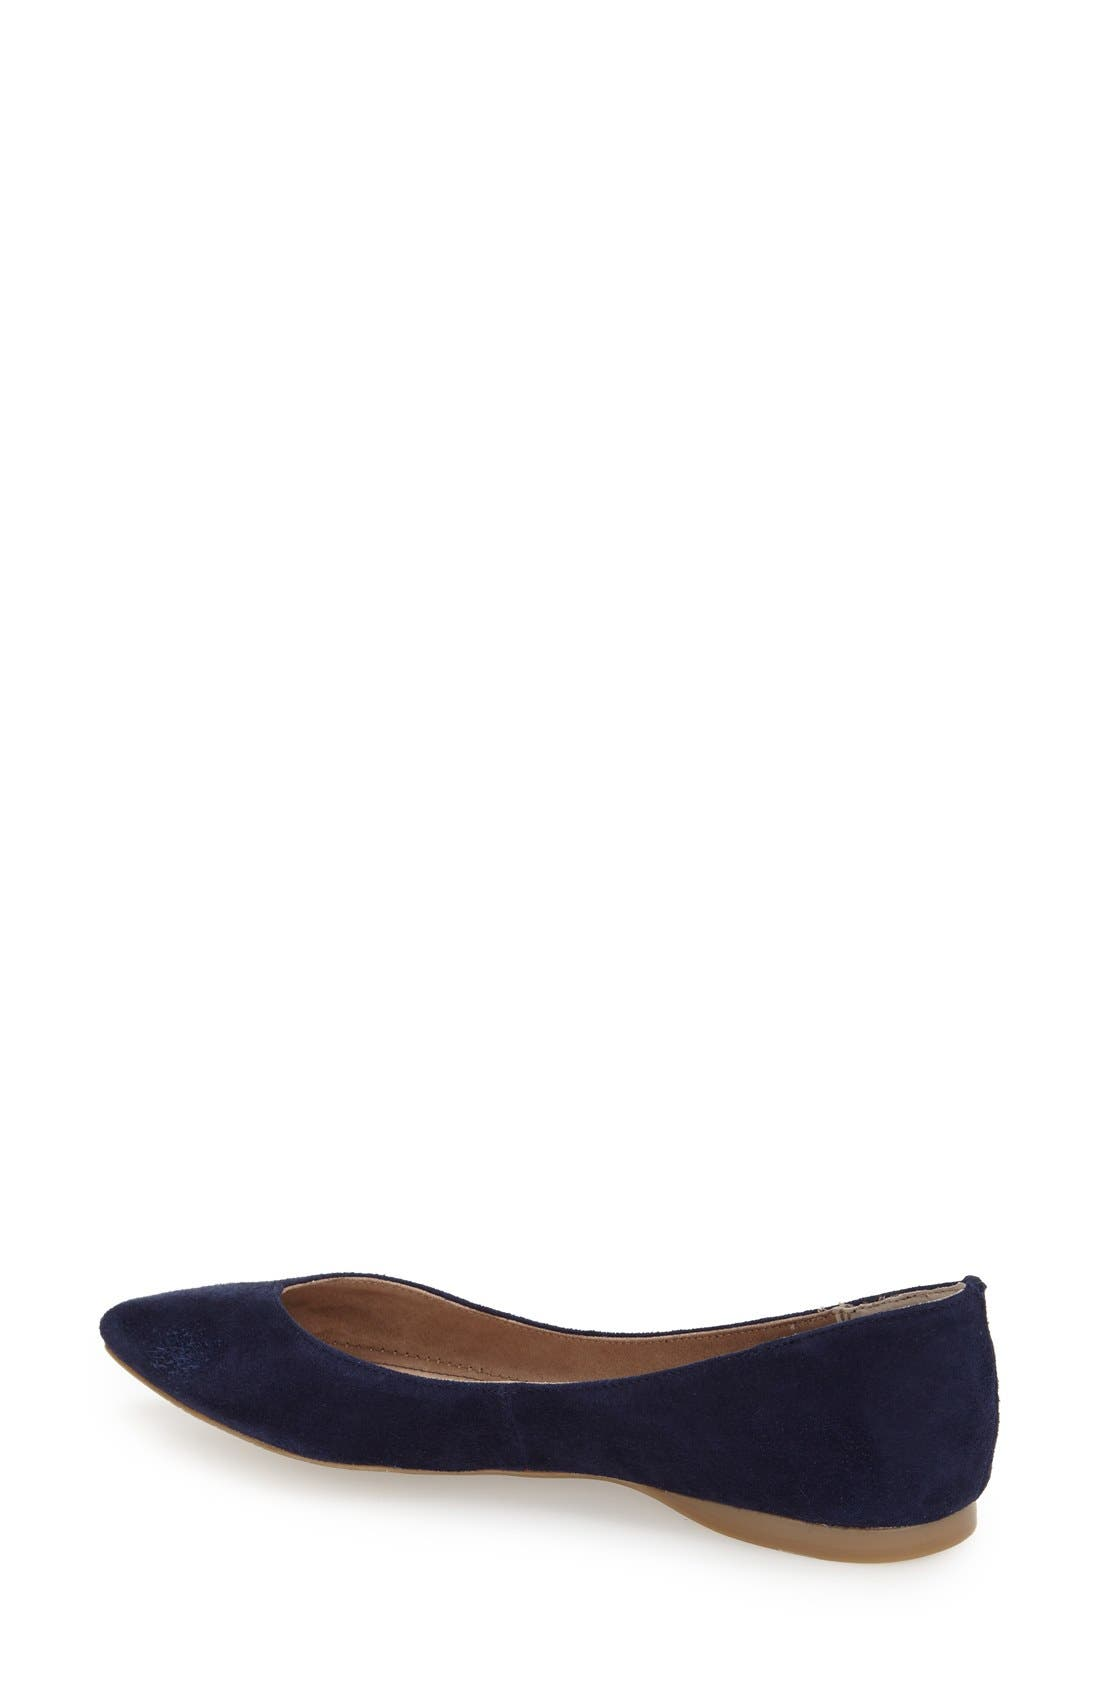 ,                             'Moveover' Pointy Toe Leather Flat,                             Alternate thumbnail 28, color,                             438